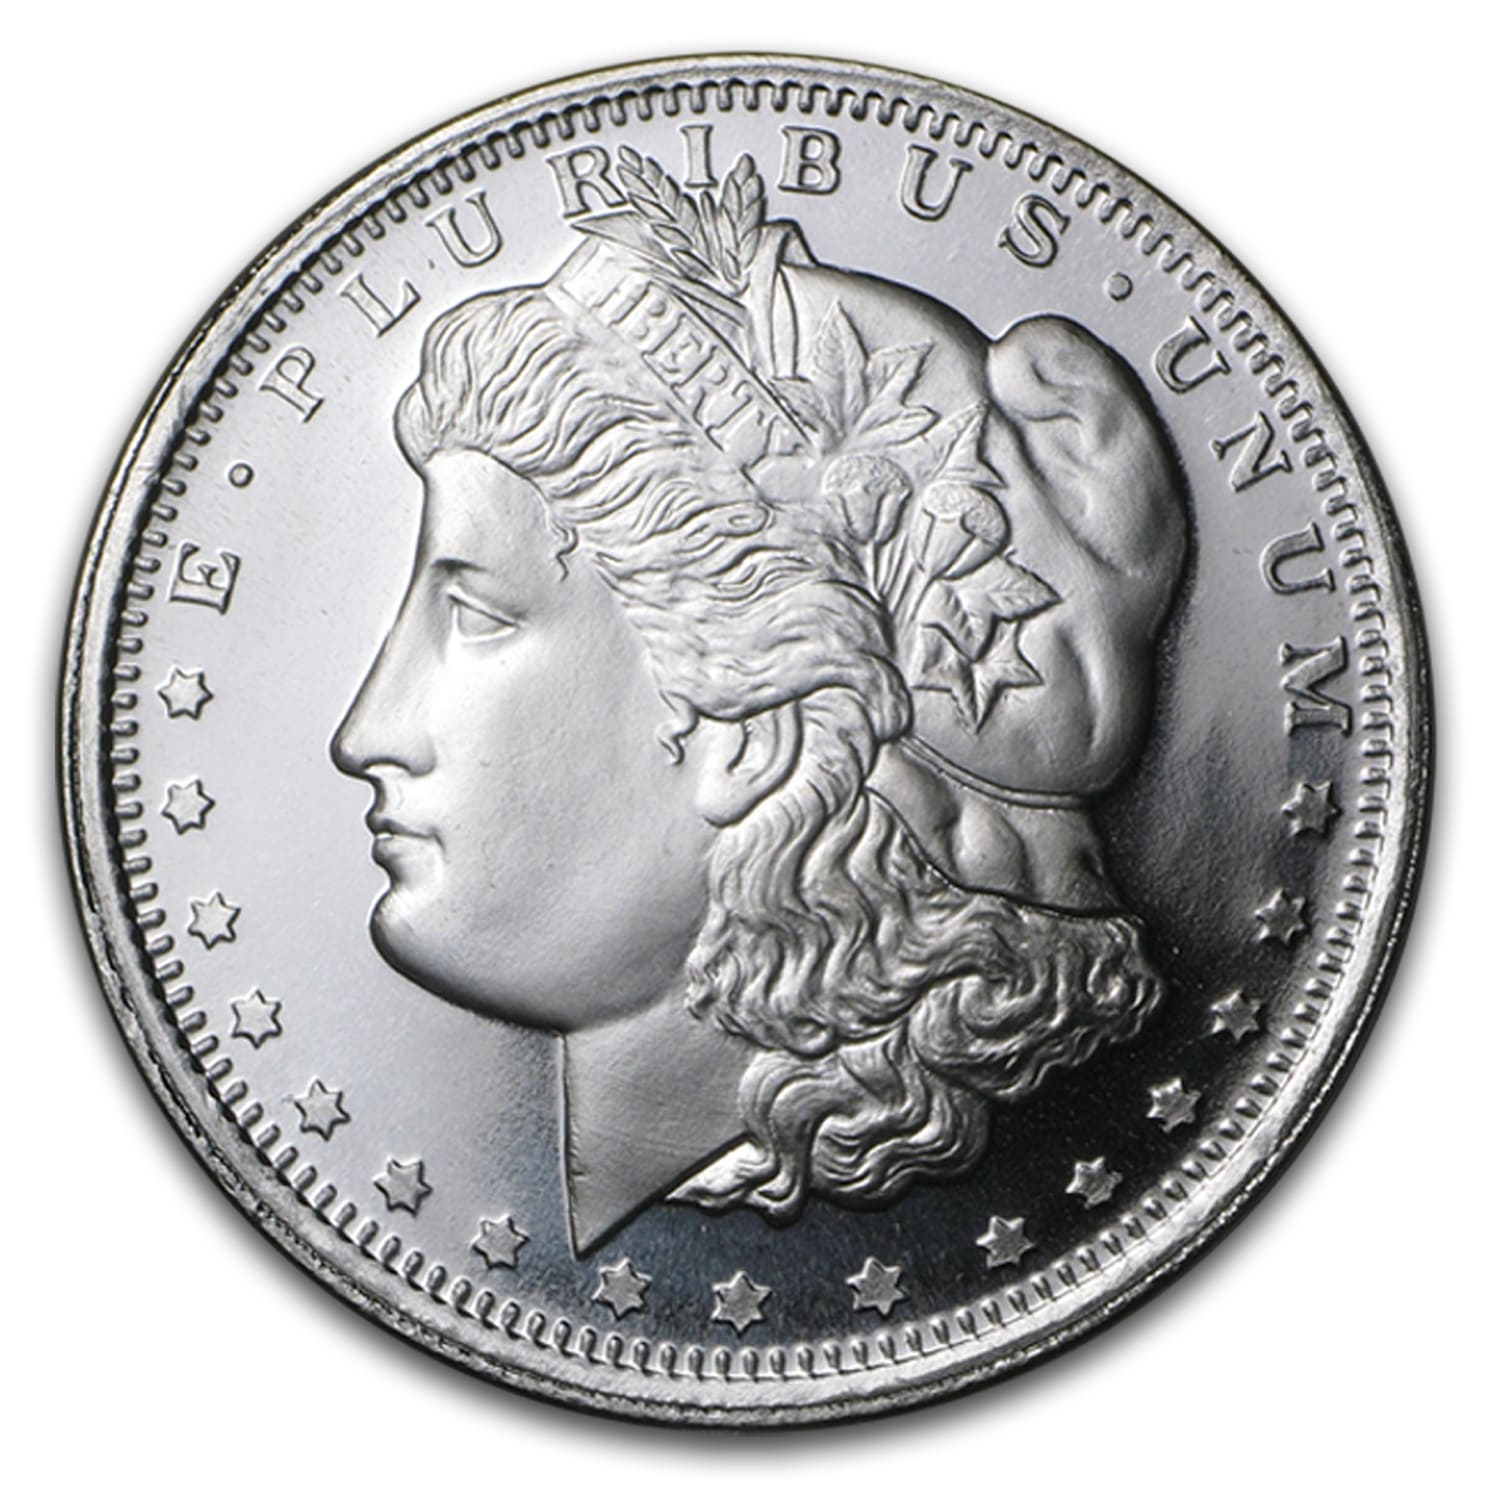 1 oz Silver Round - Morgan Dollar Design